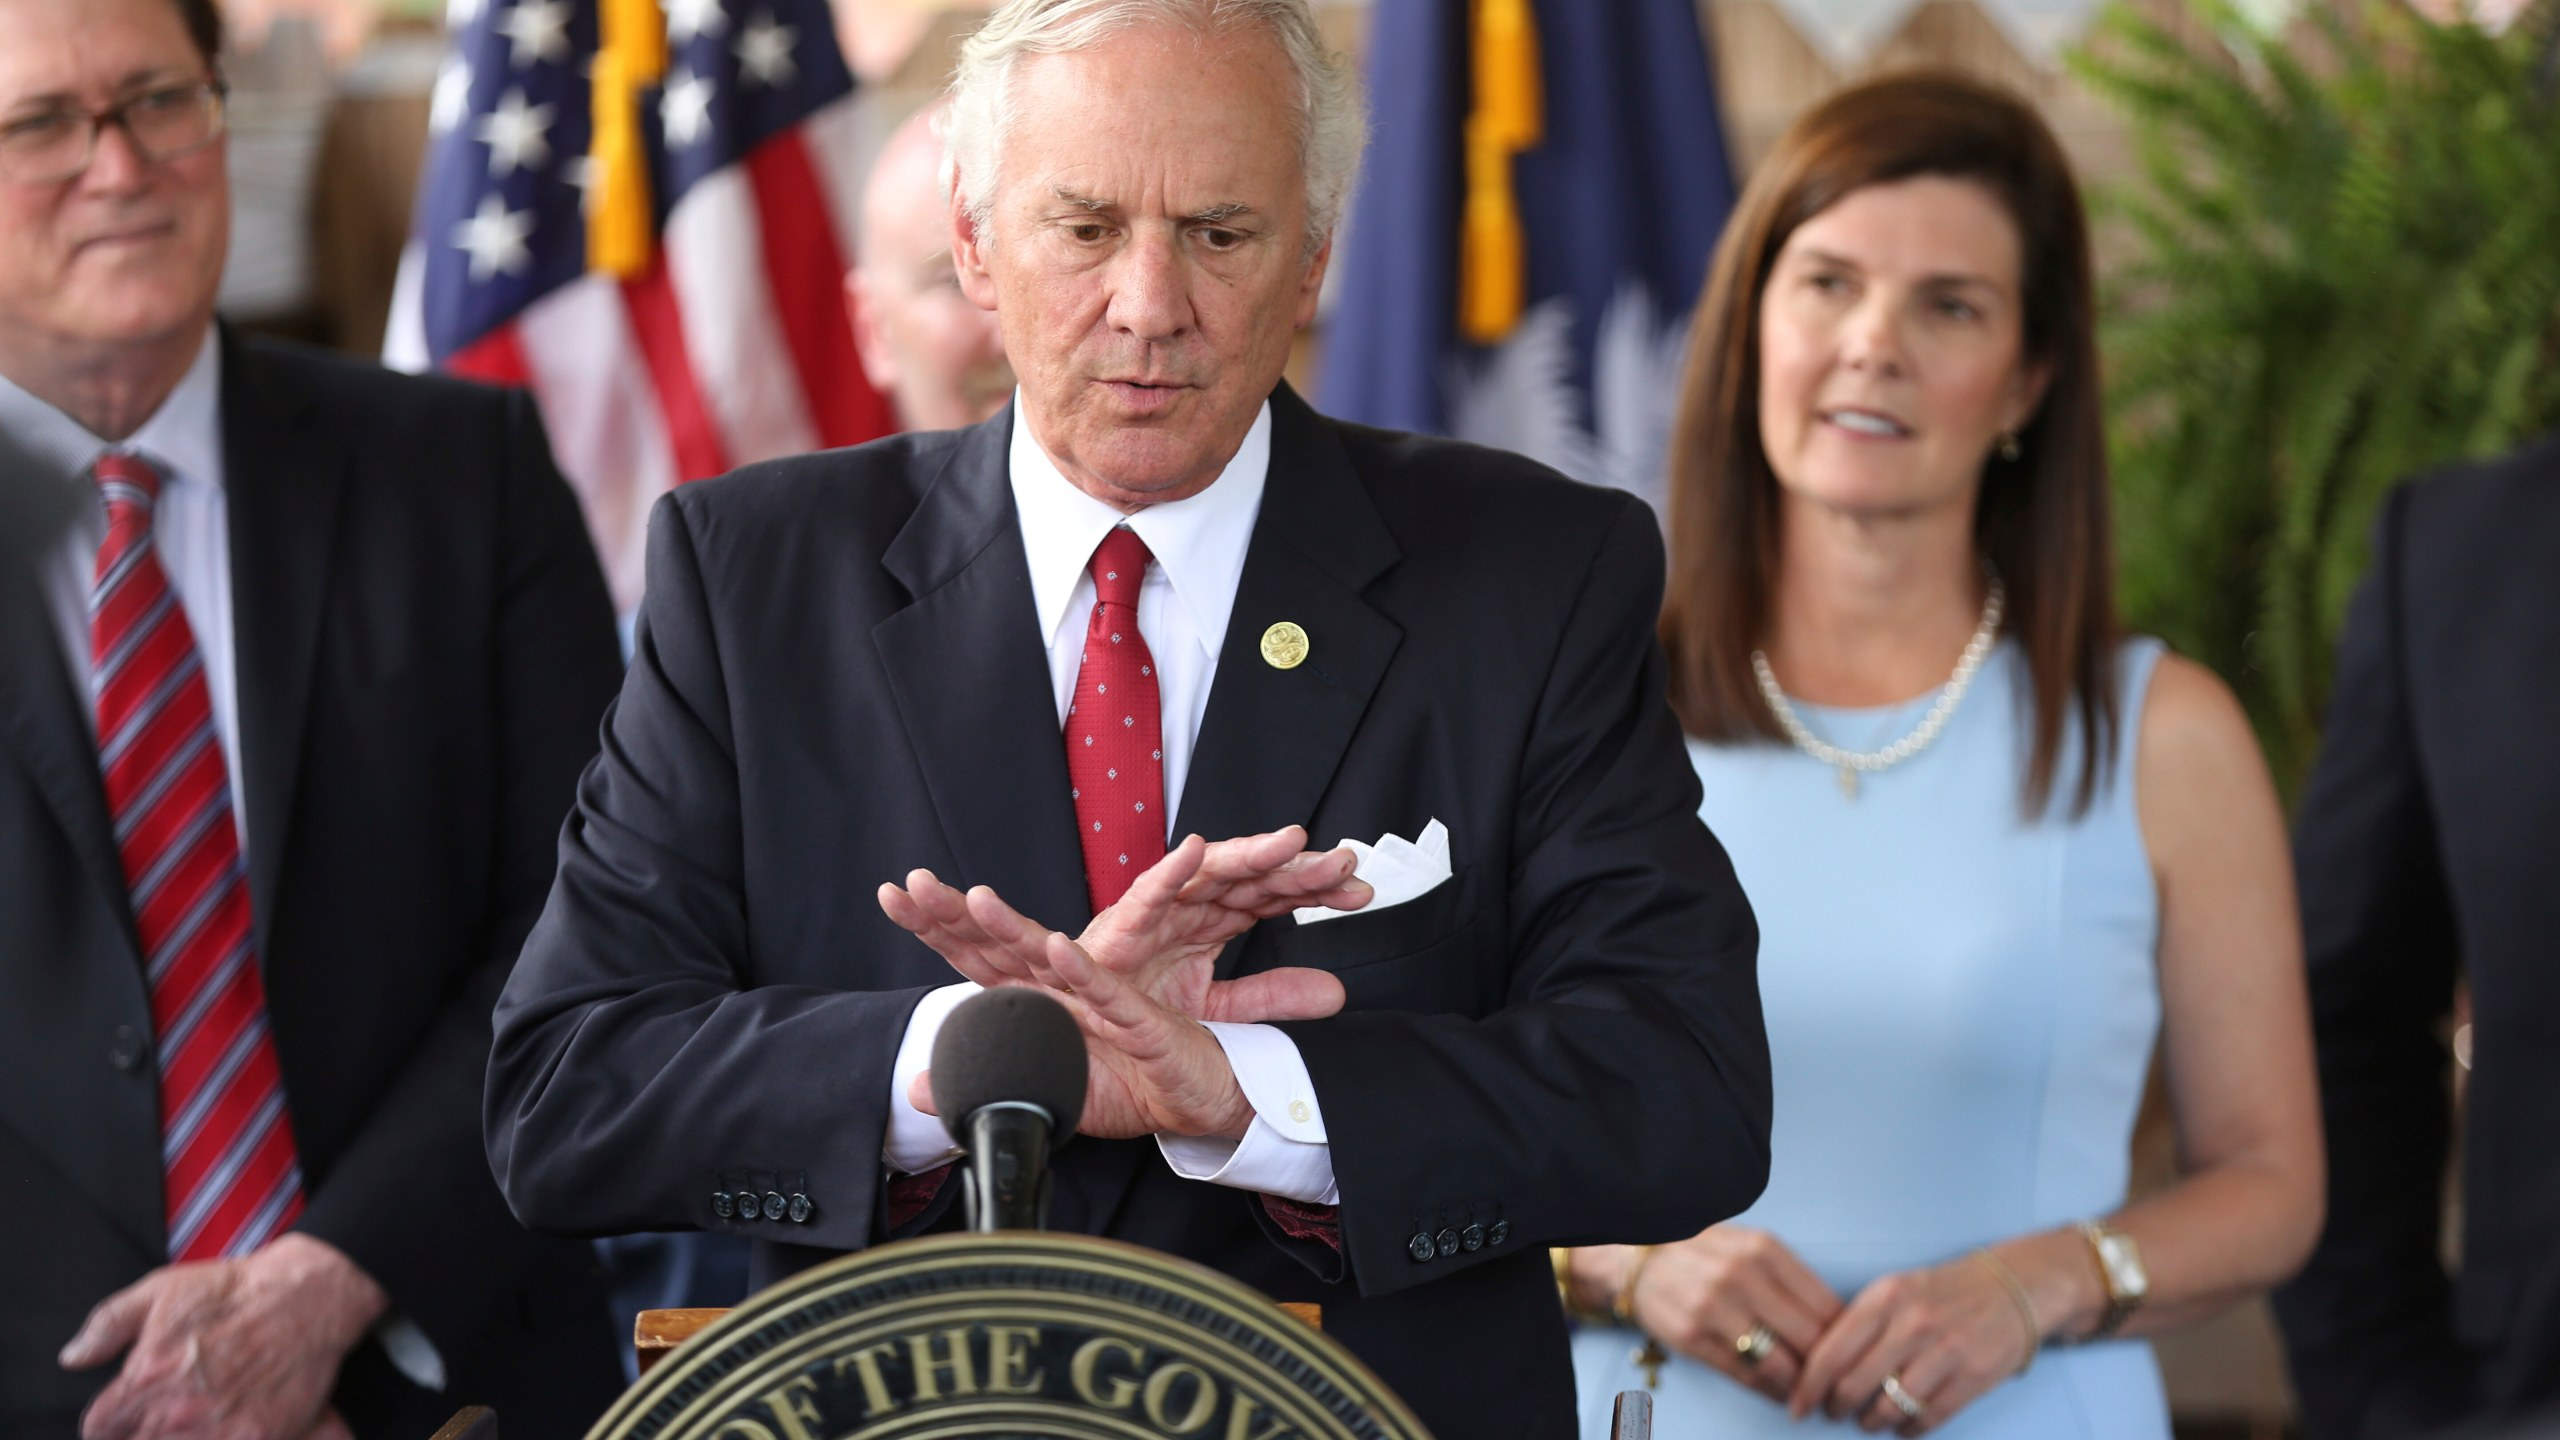 In this June 24, 2021, file photo, South Carolina Gov. Henry McMaster speaks during a ceremony to sign a bill preventing people from suing businesses over COVID-19 on Thursday, at Cafe Strudel in West Columbia, S.C. McMaster is one of several Republican state leaders opposing federal efforts to go door-to-door to urge people to get vaccinated against COVID-19. (AP Photo/Jeffrey Collins, File)